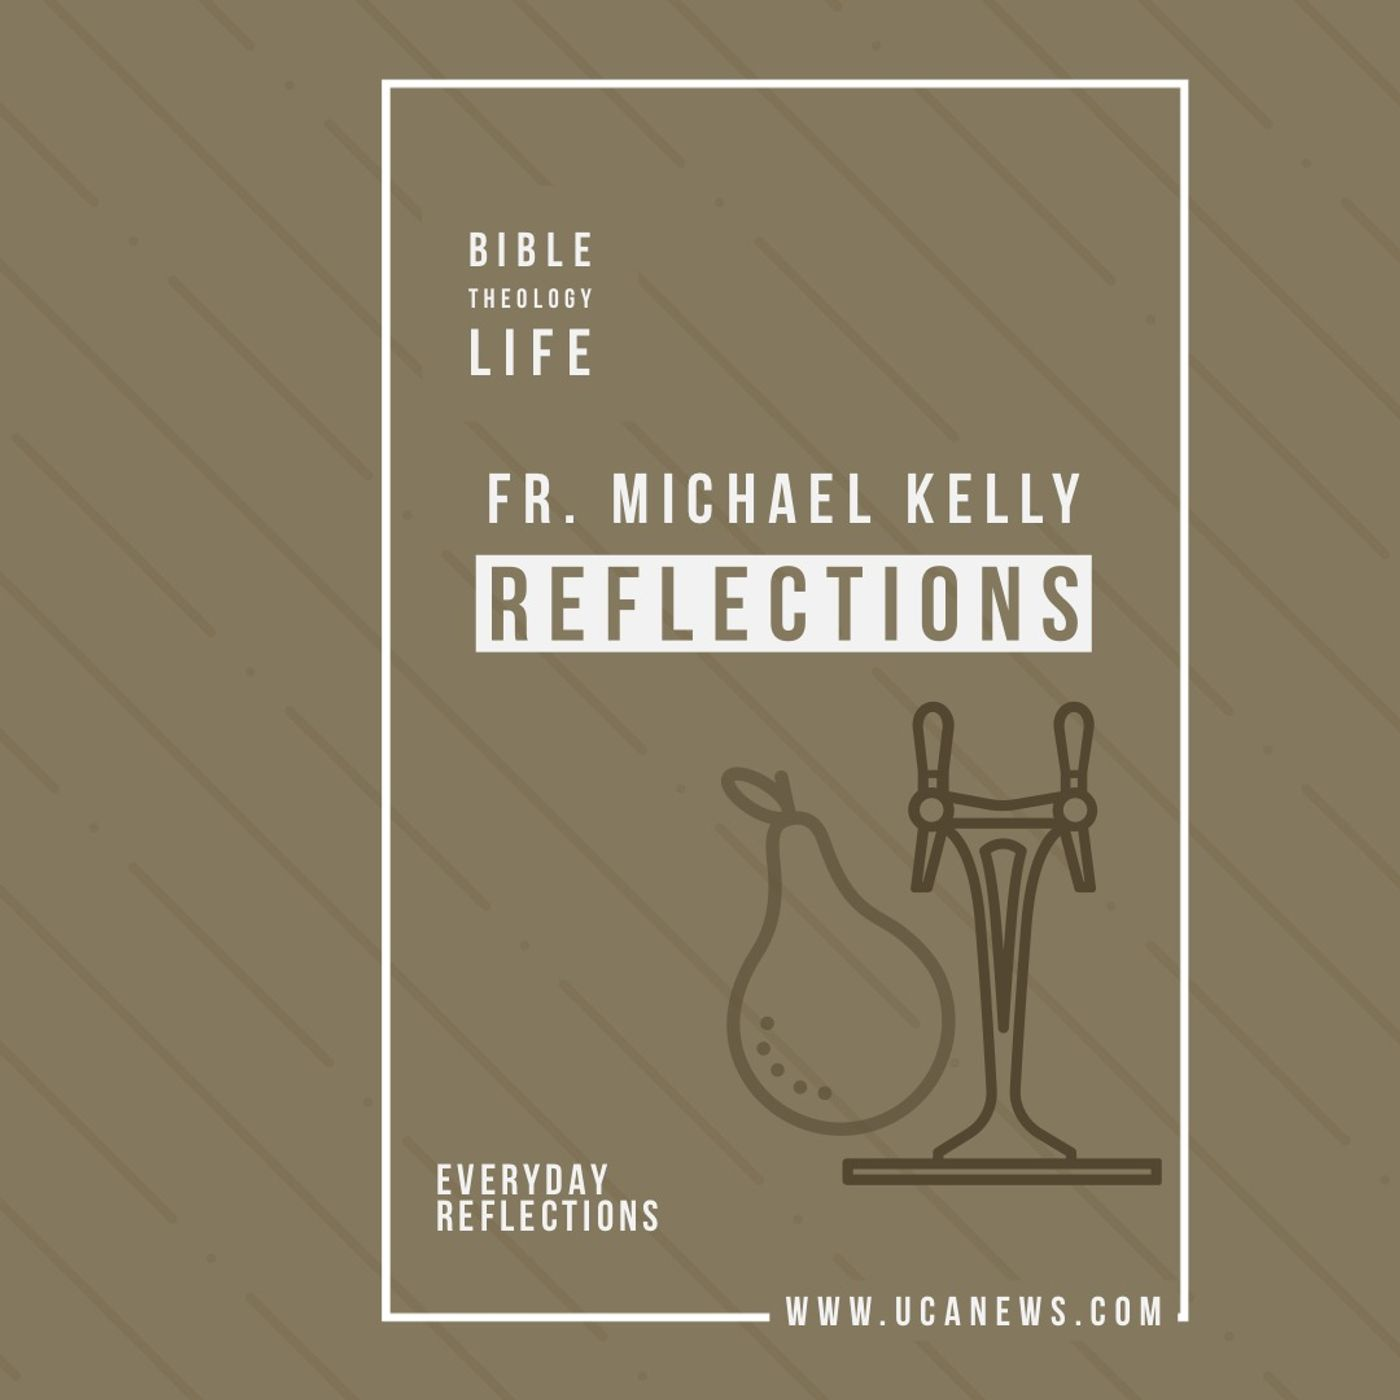 Reflections with Fr. Michael Kelly - Friday 9 Apr, 2021